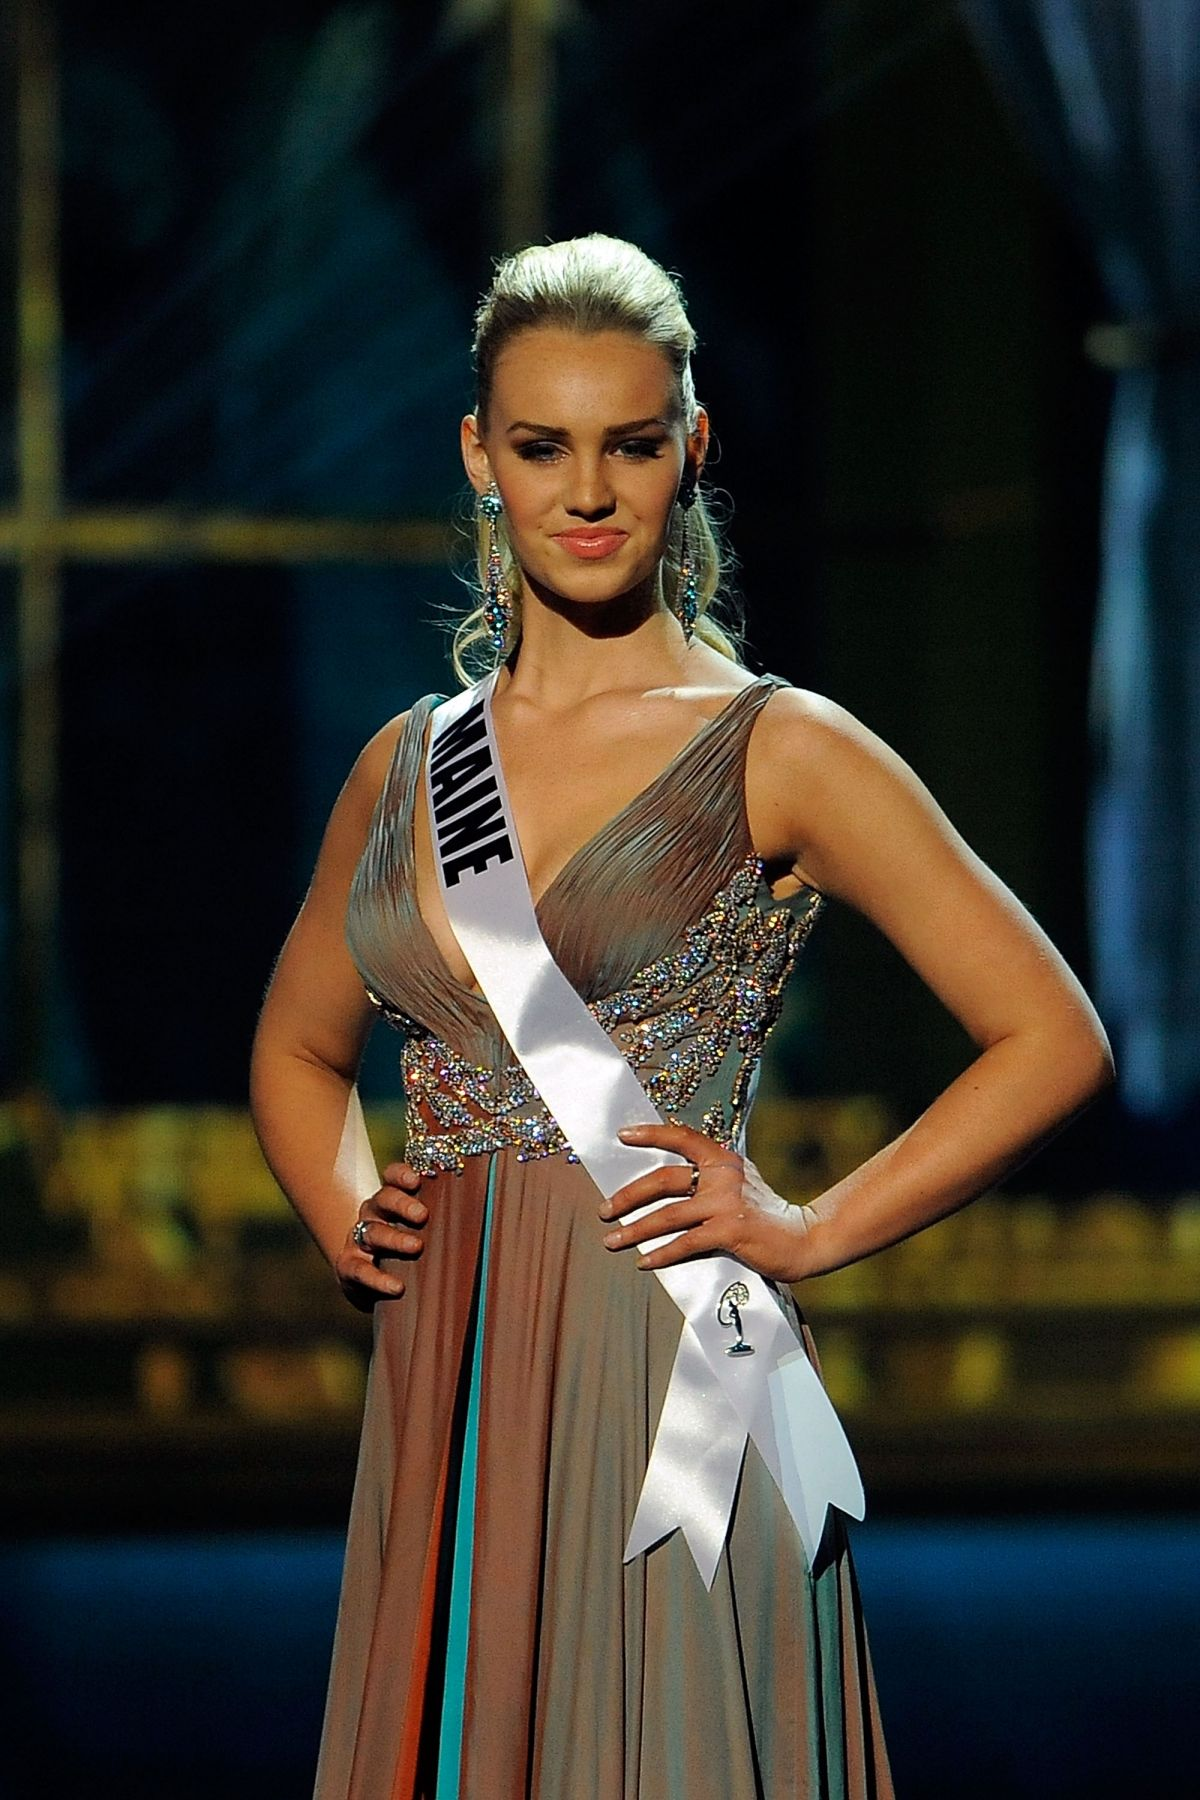 SAMANTHA DAHLBORG at Miss USA 2014 Preliminary Competition